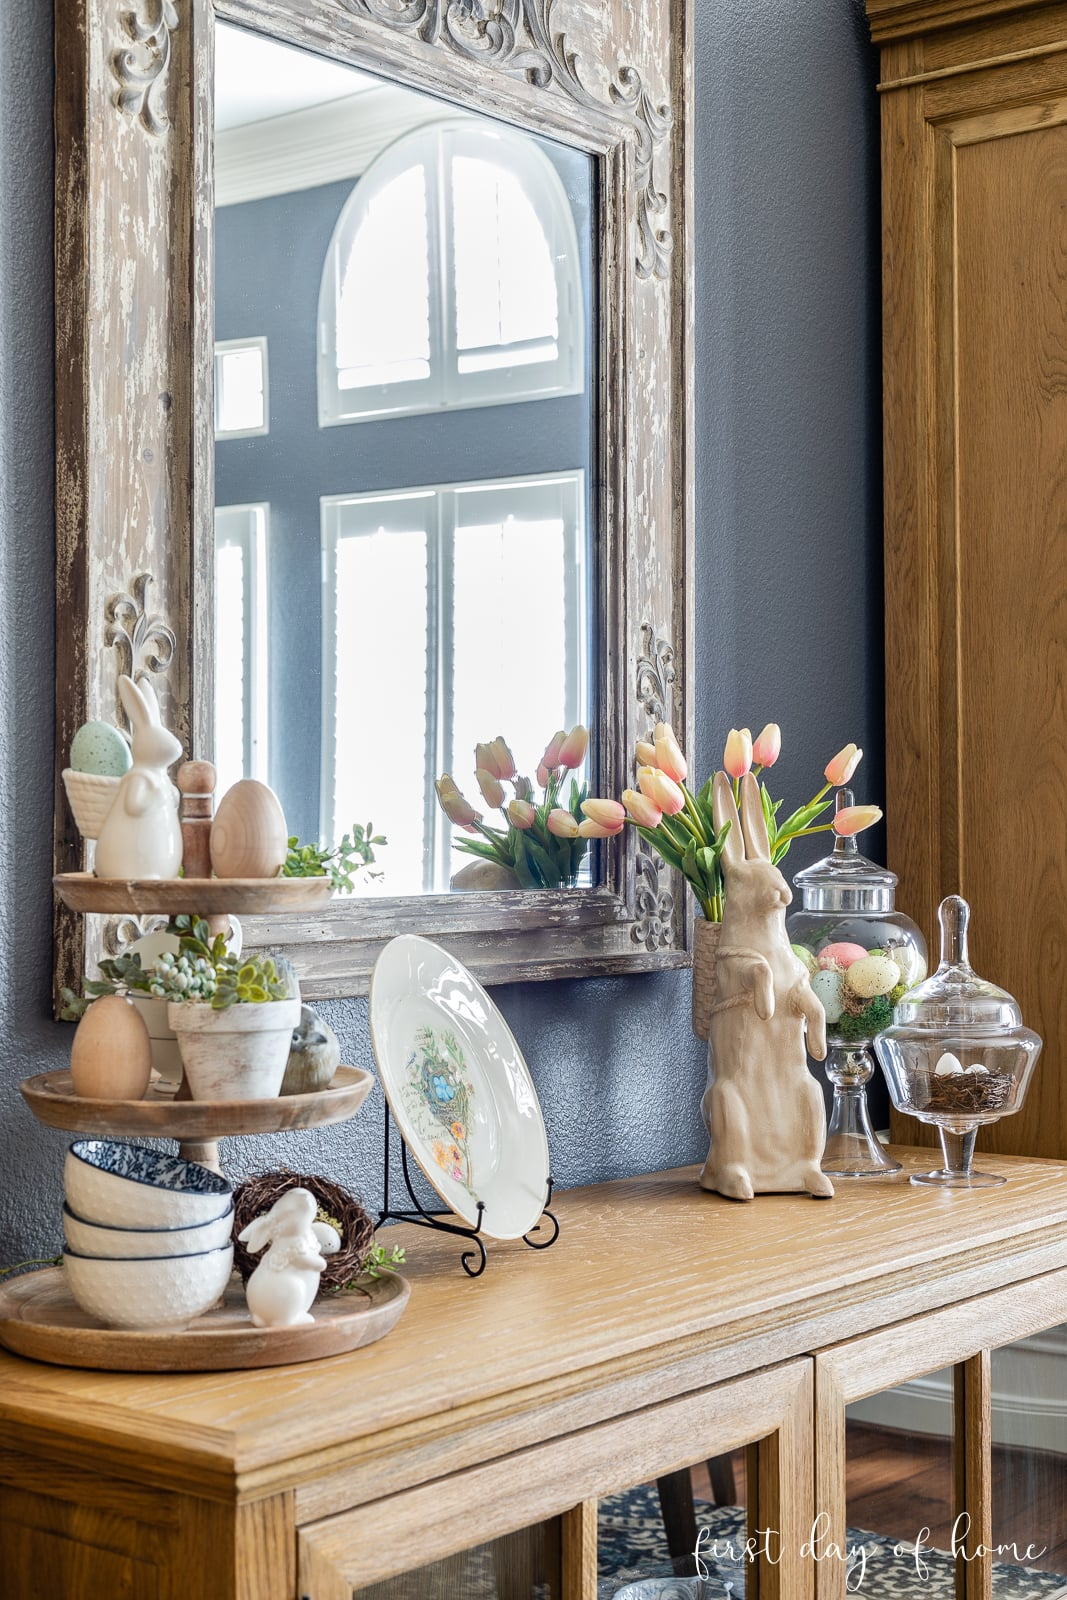 Spring home decor on sideboard, including bunny figurine, glass apothecary jars, tiered tray and decoupage plate